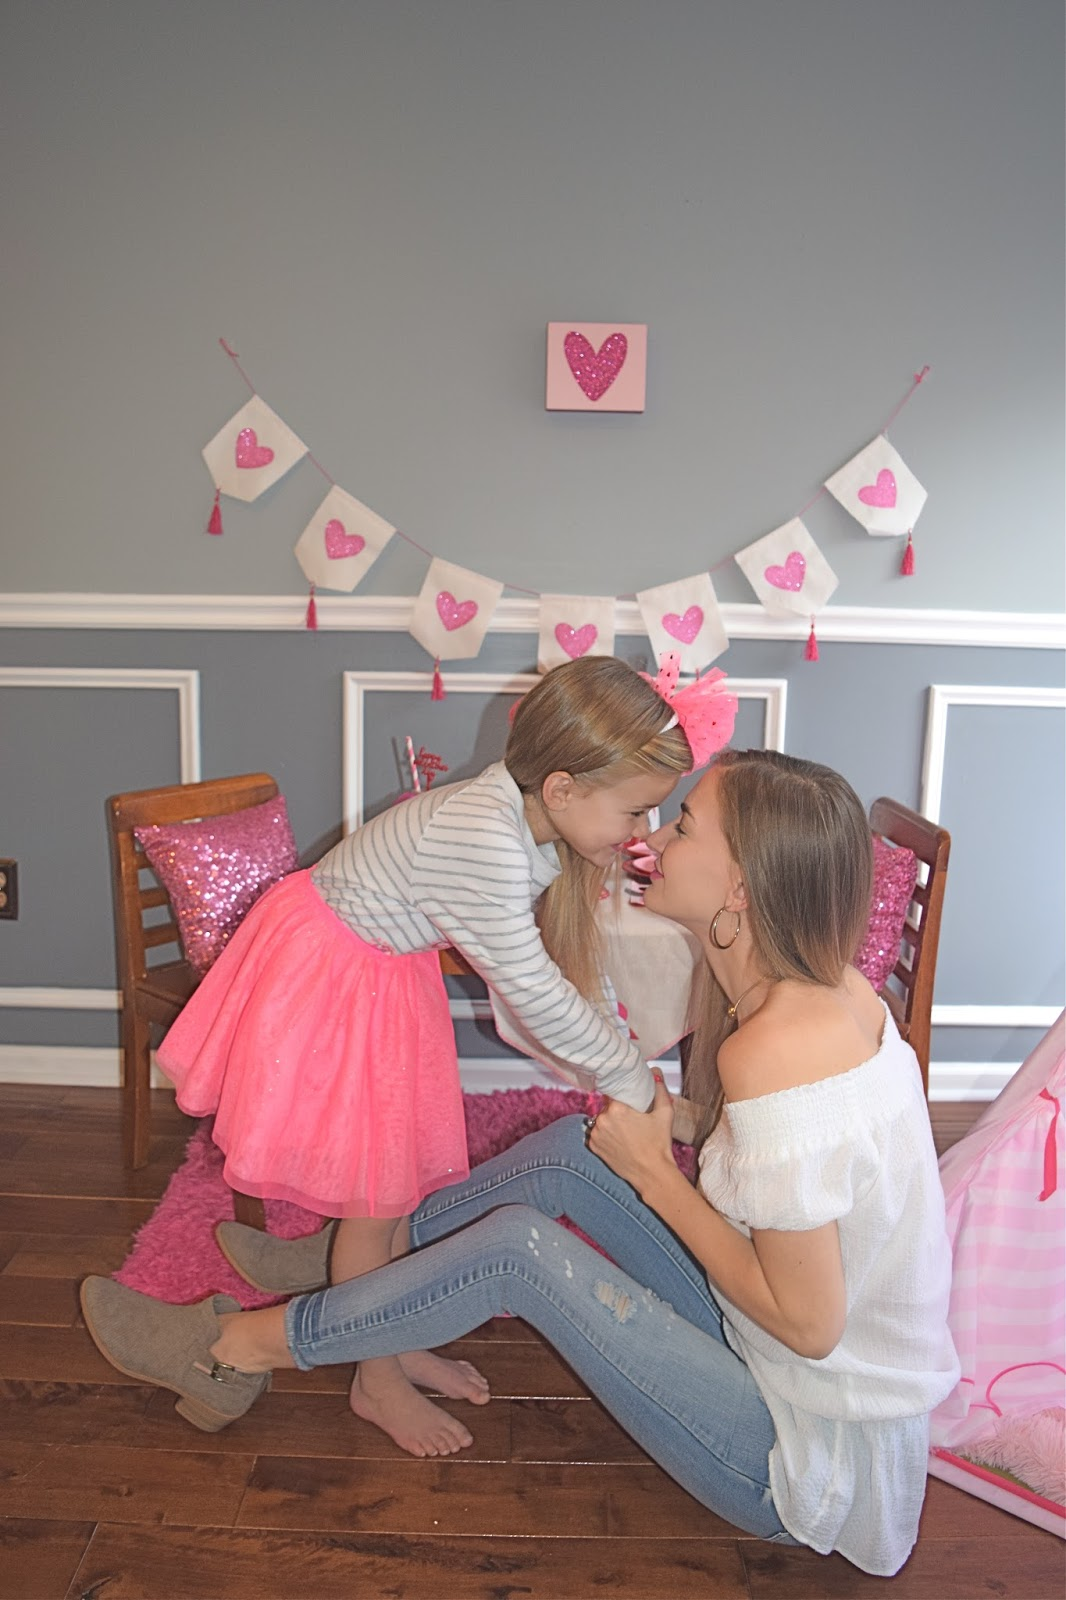 Kids Valentine's day party, kids valentines day party idea. Girls heart party, Girls pink heart party. Our generation teepee, sequin pillows, girls in pink tutu for party, hot pink paper straws, valentines day ombre rose cake, girls pink party ideas